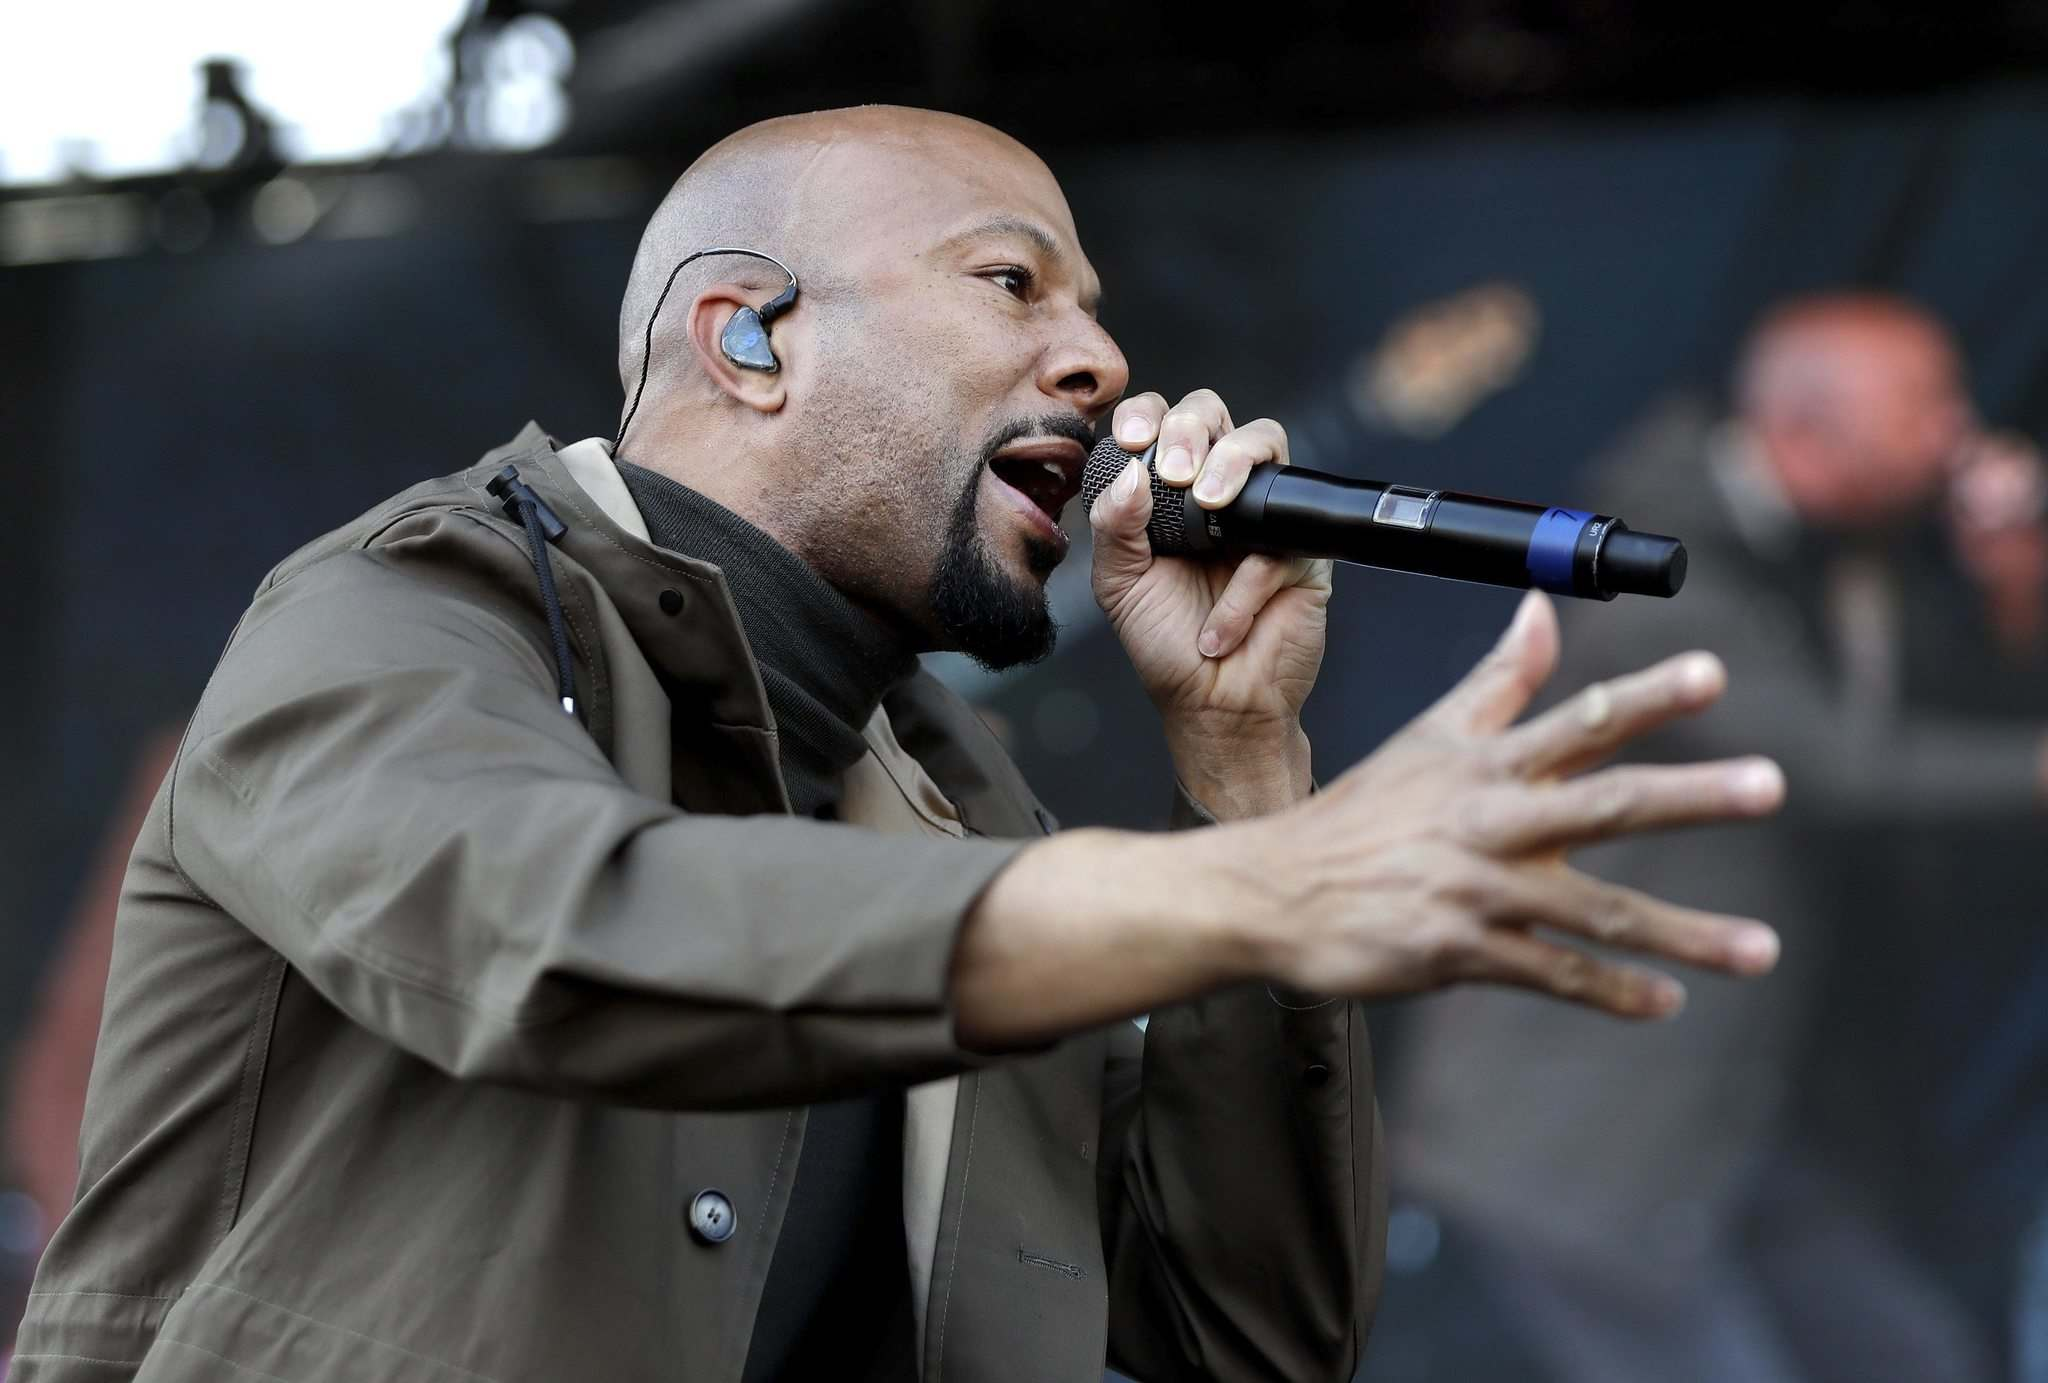 Rapper and actor Common takes the Centennial Concert Hall Stage June 20. (Mark Humphrey / The Associated Press)